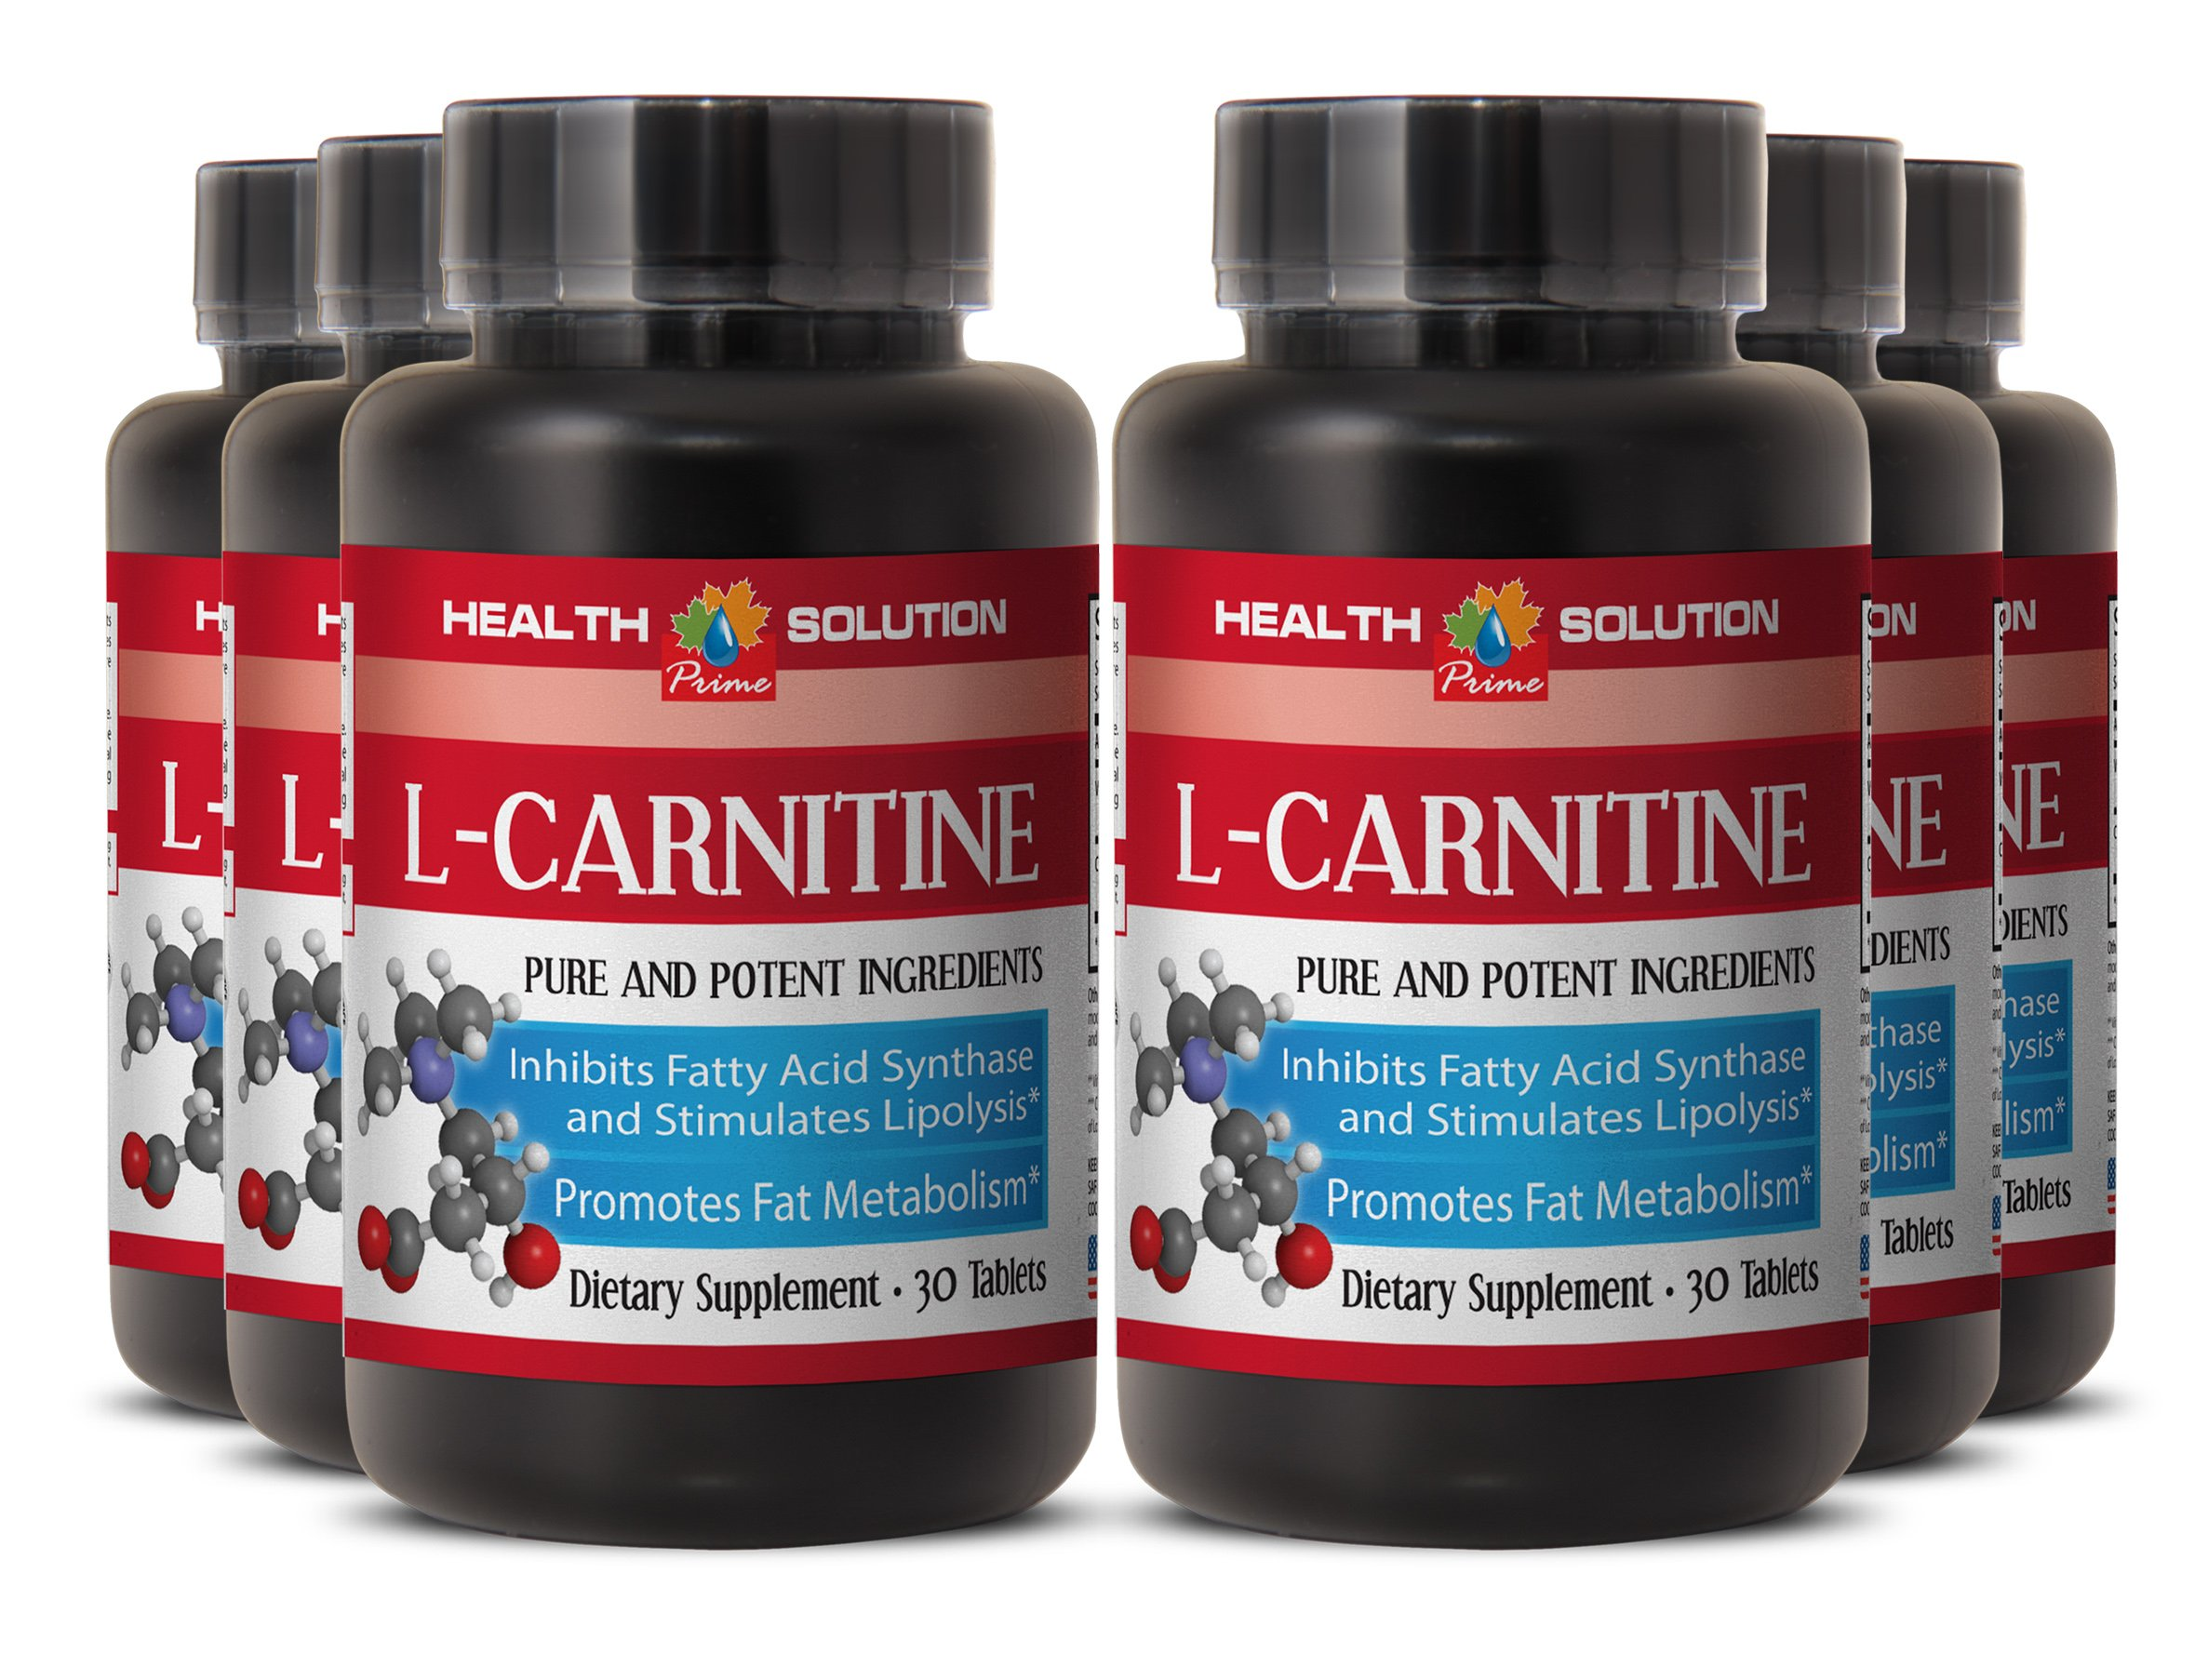 L-carnitine plus green coffee extract - L-CARNITINE 500MG- performance booster (6 Bottles) by Health Solution Prime